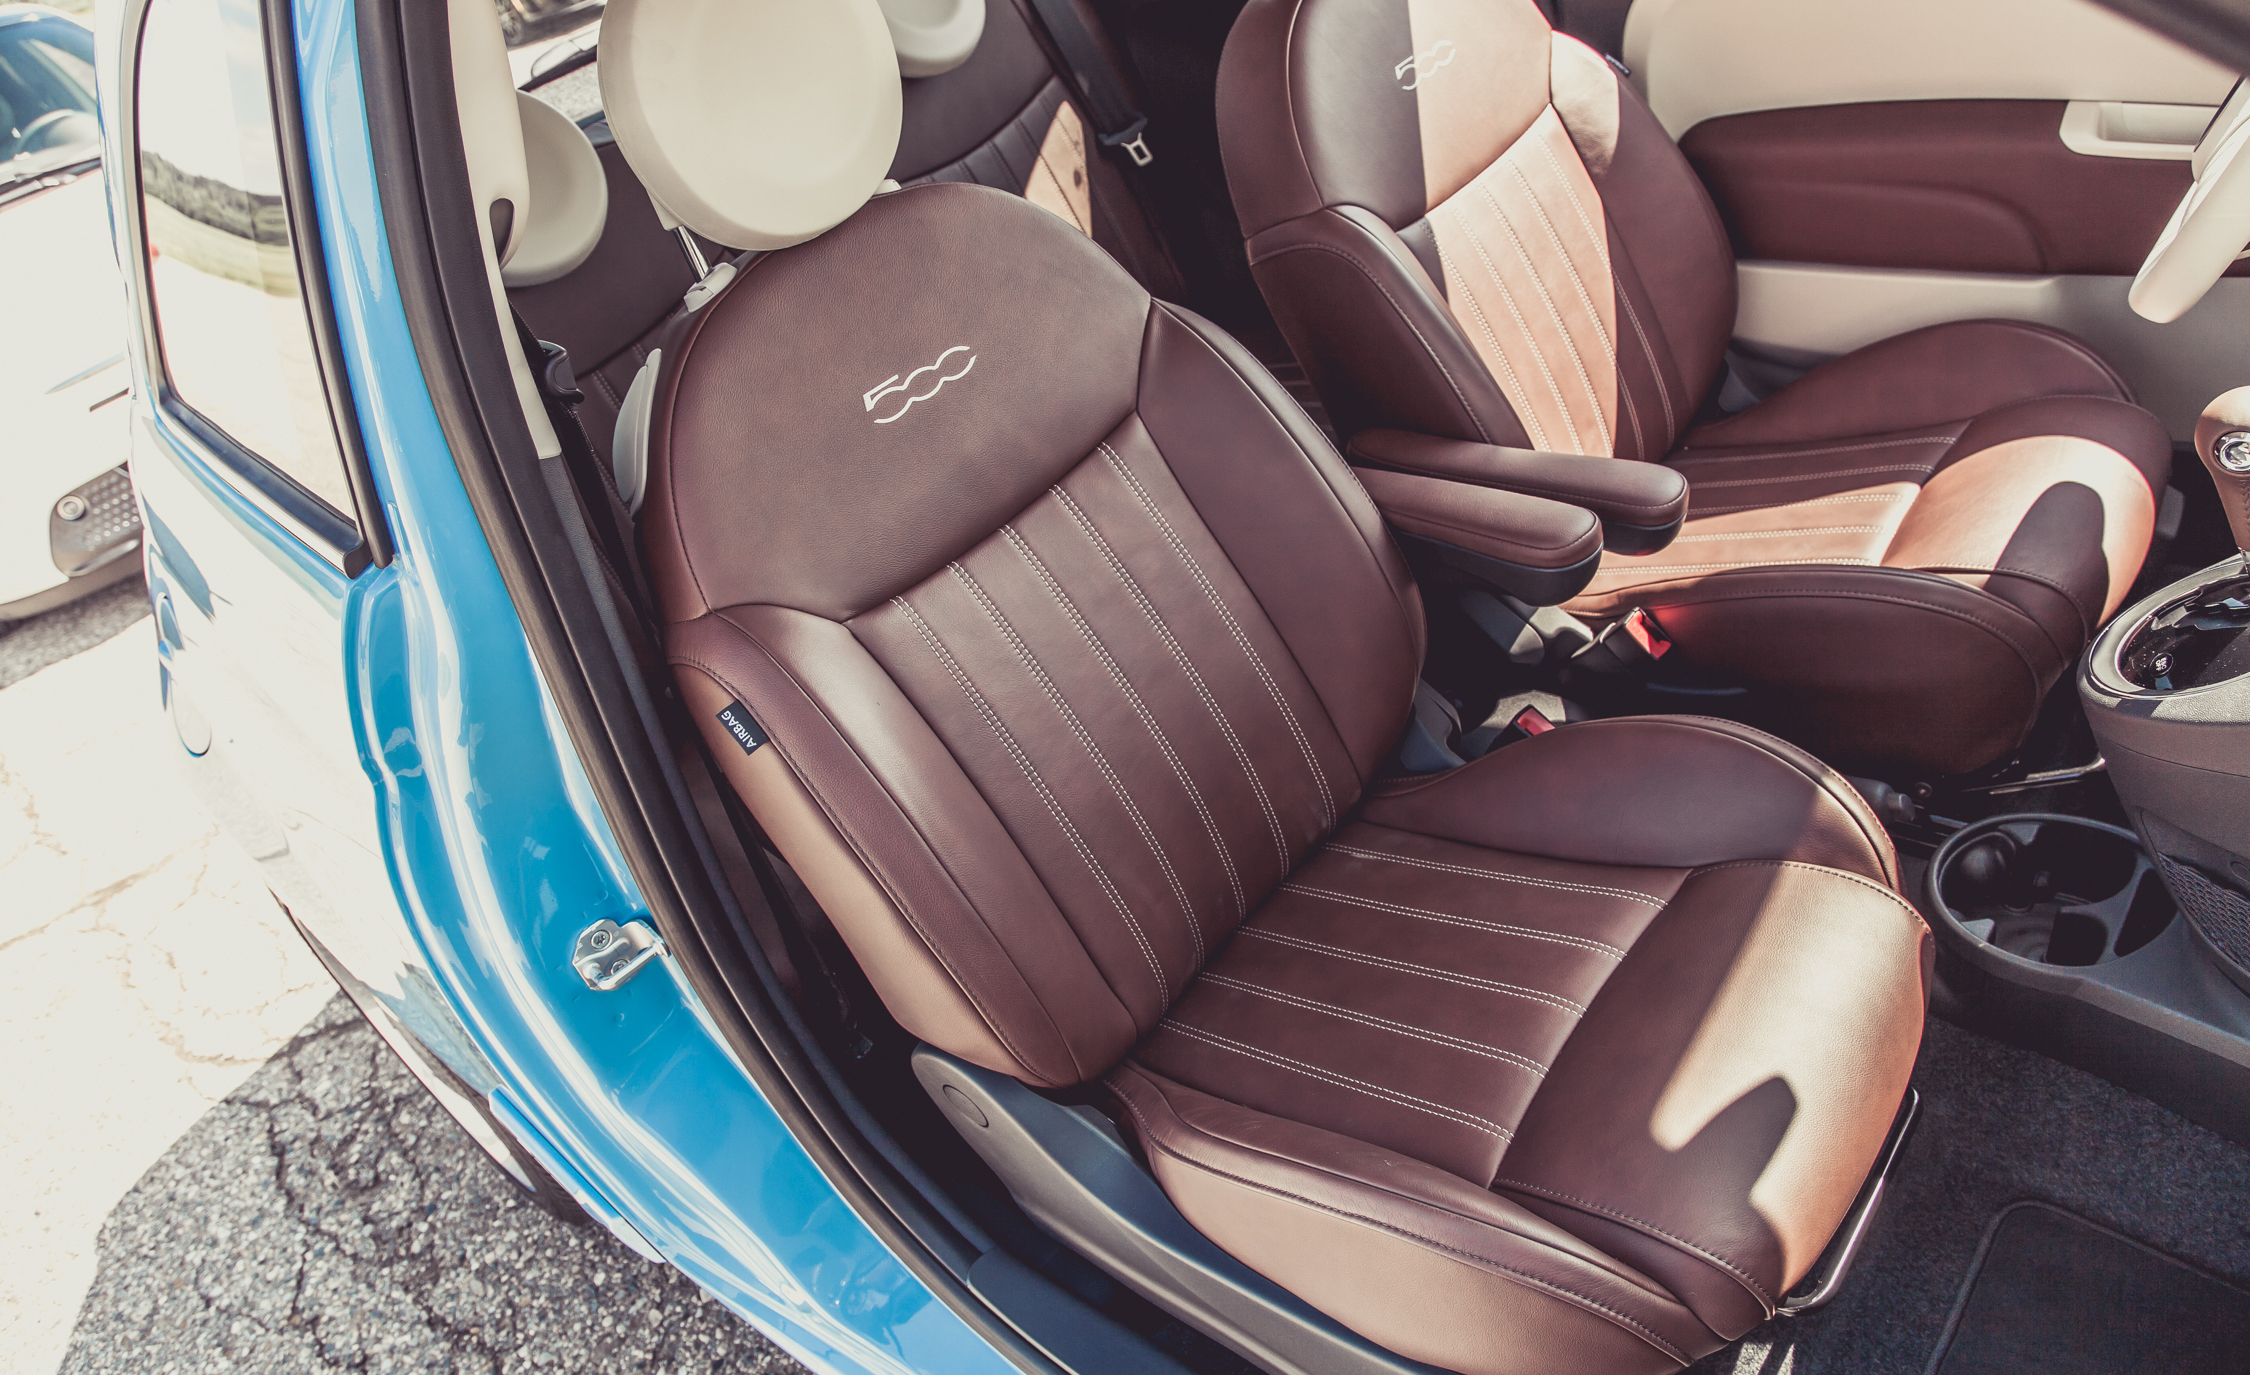 2014 Fiat 500 1957 Edition Interior (View 3 of 12)